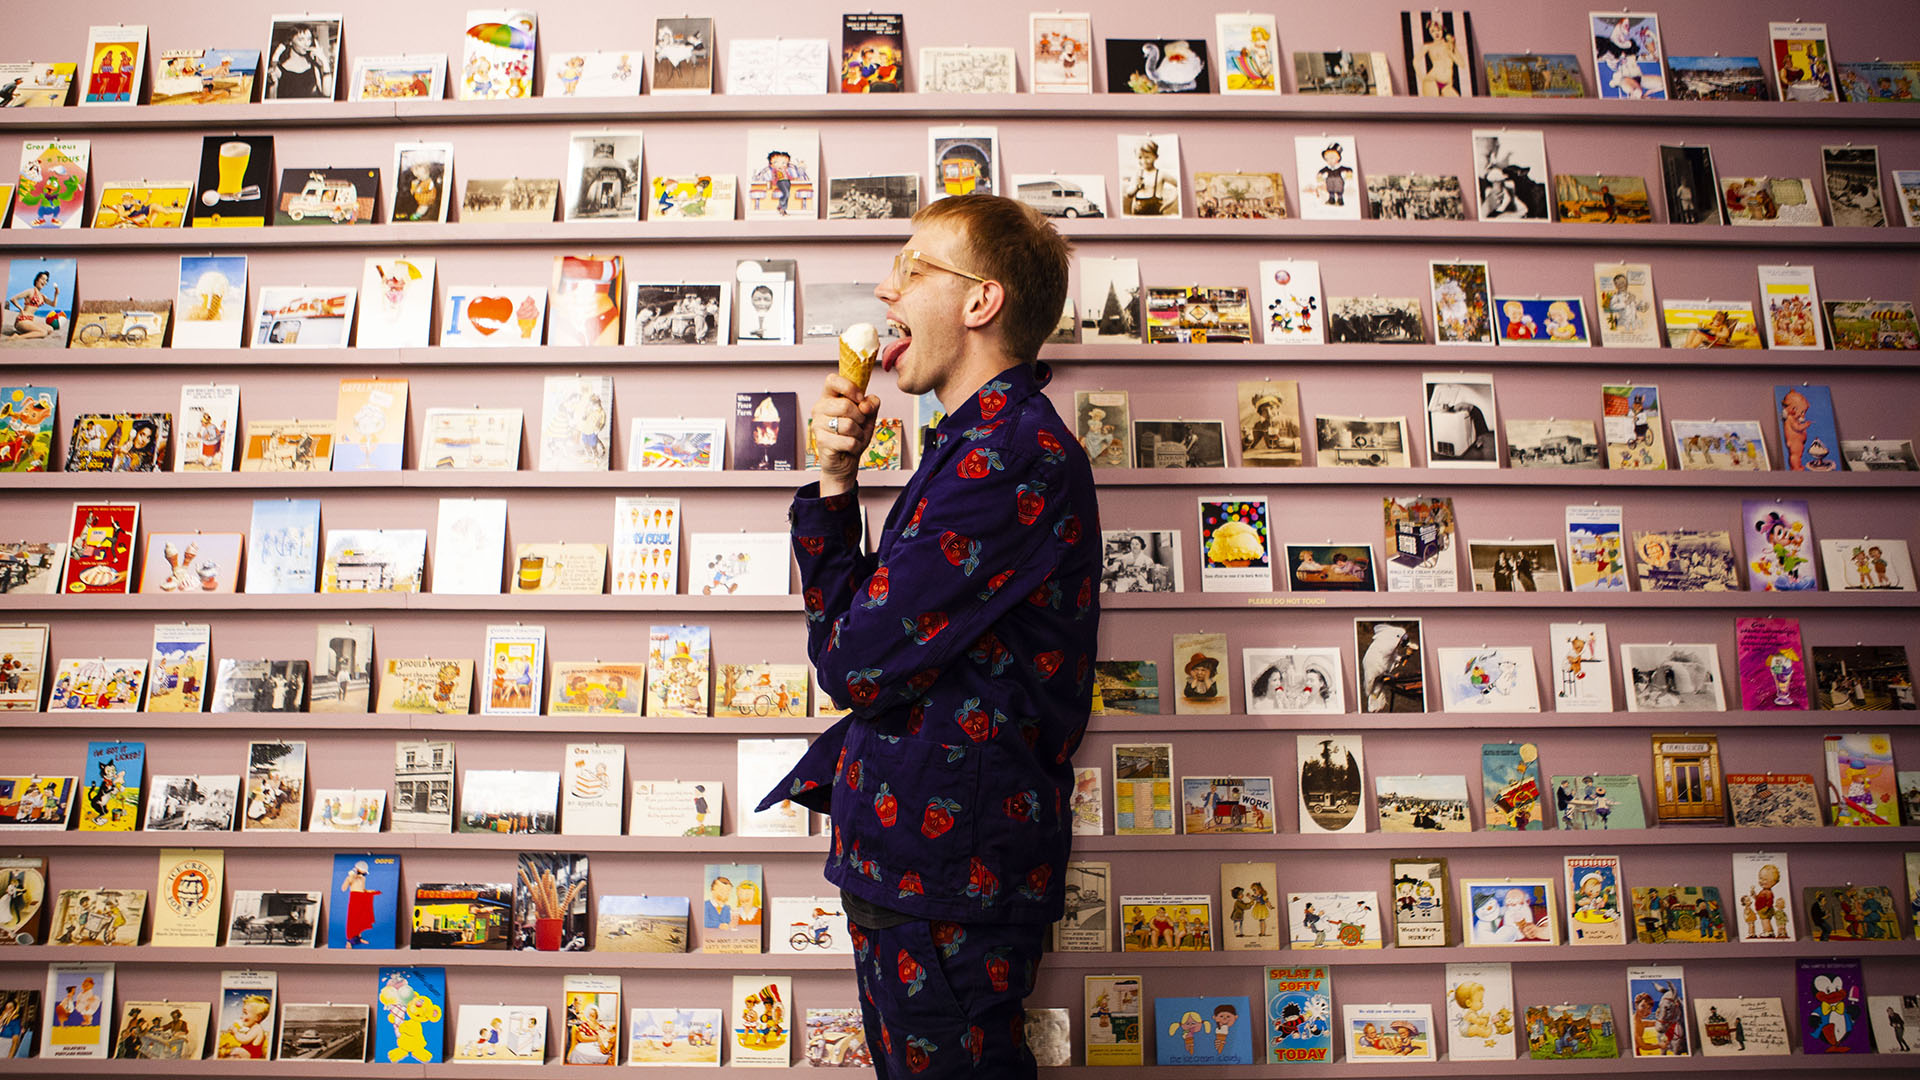 A man licks and ice cream cone in front of a pink wall lined with rows of ice cream themed postcards.